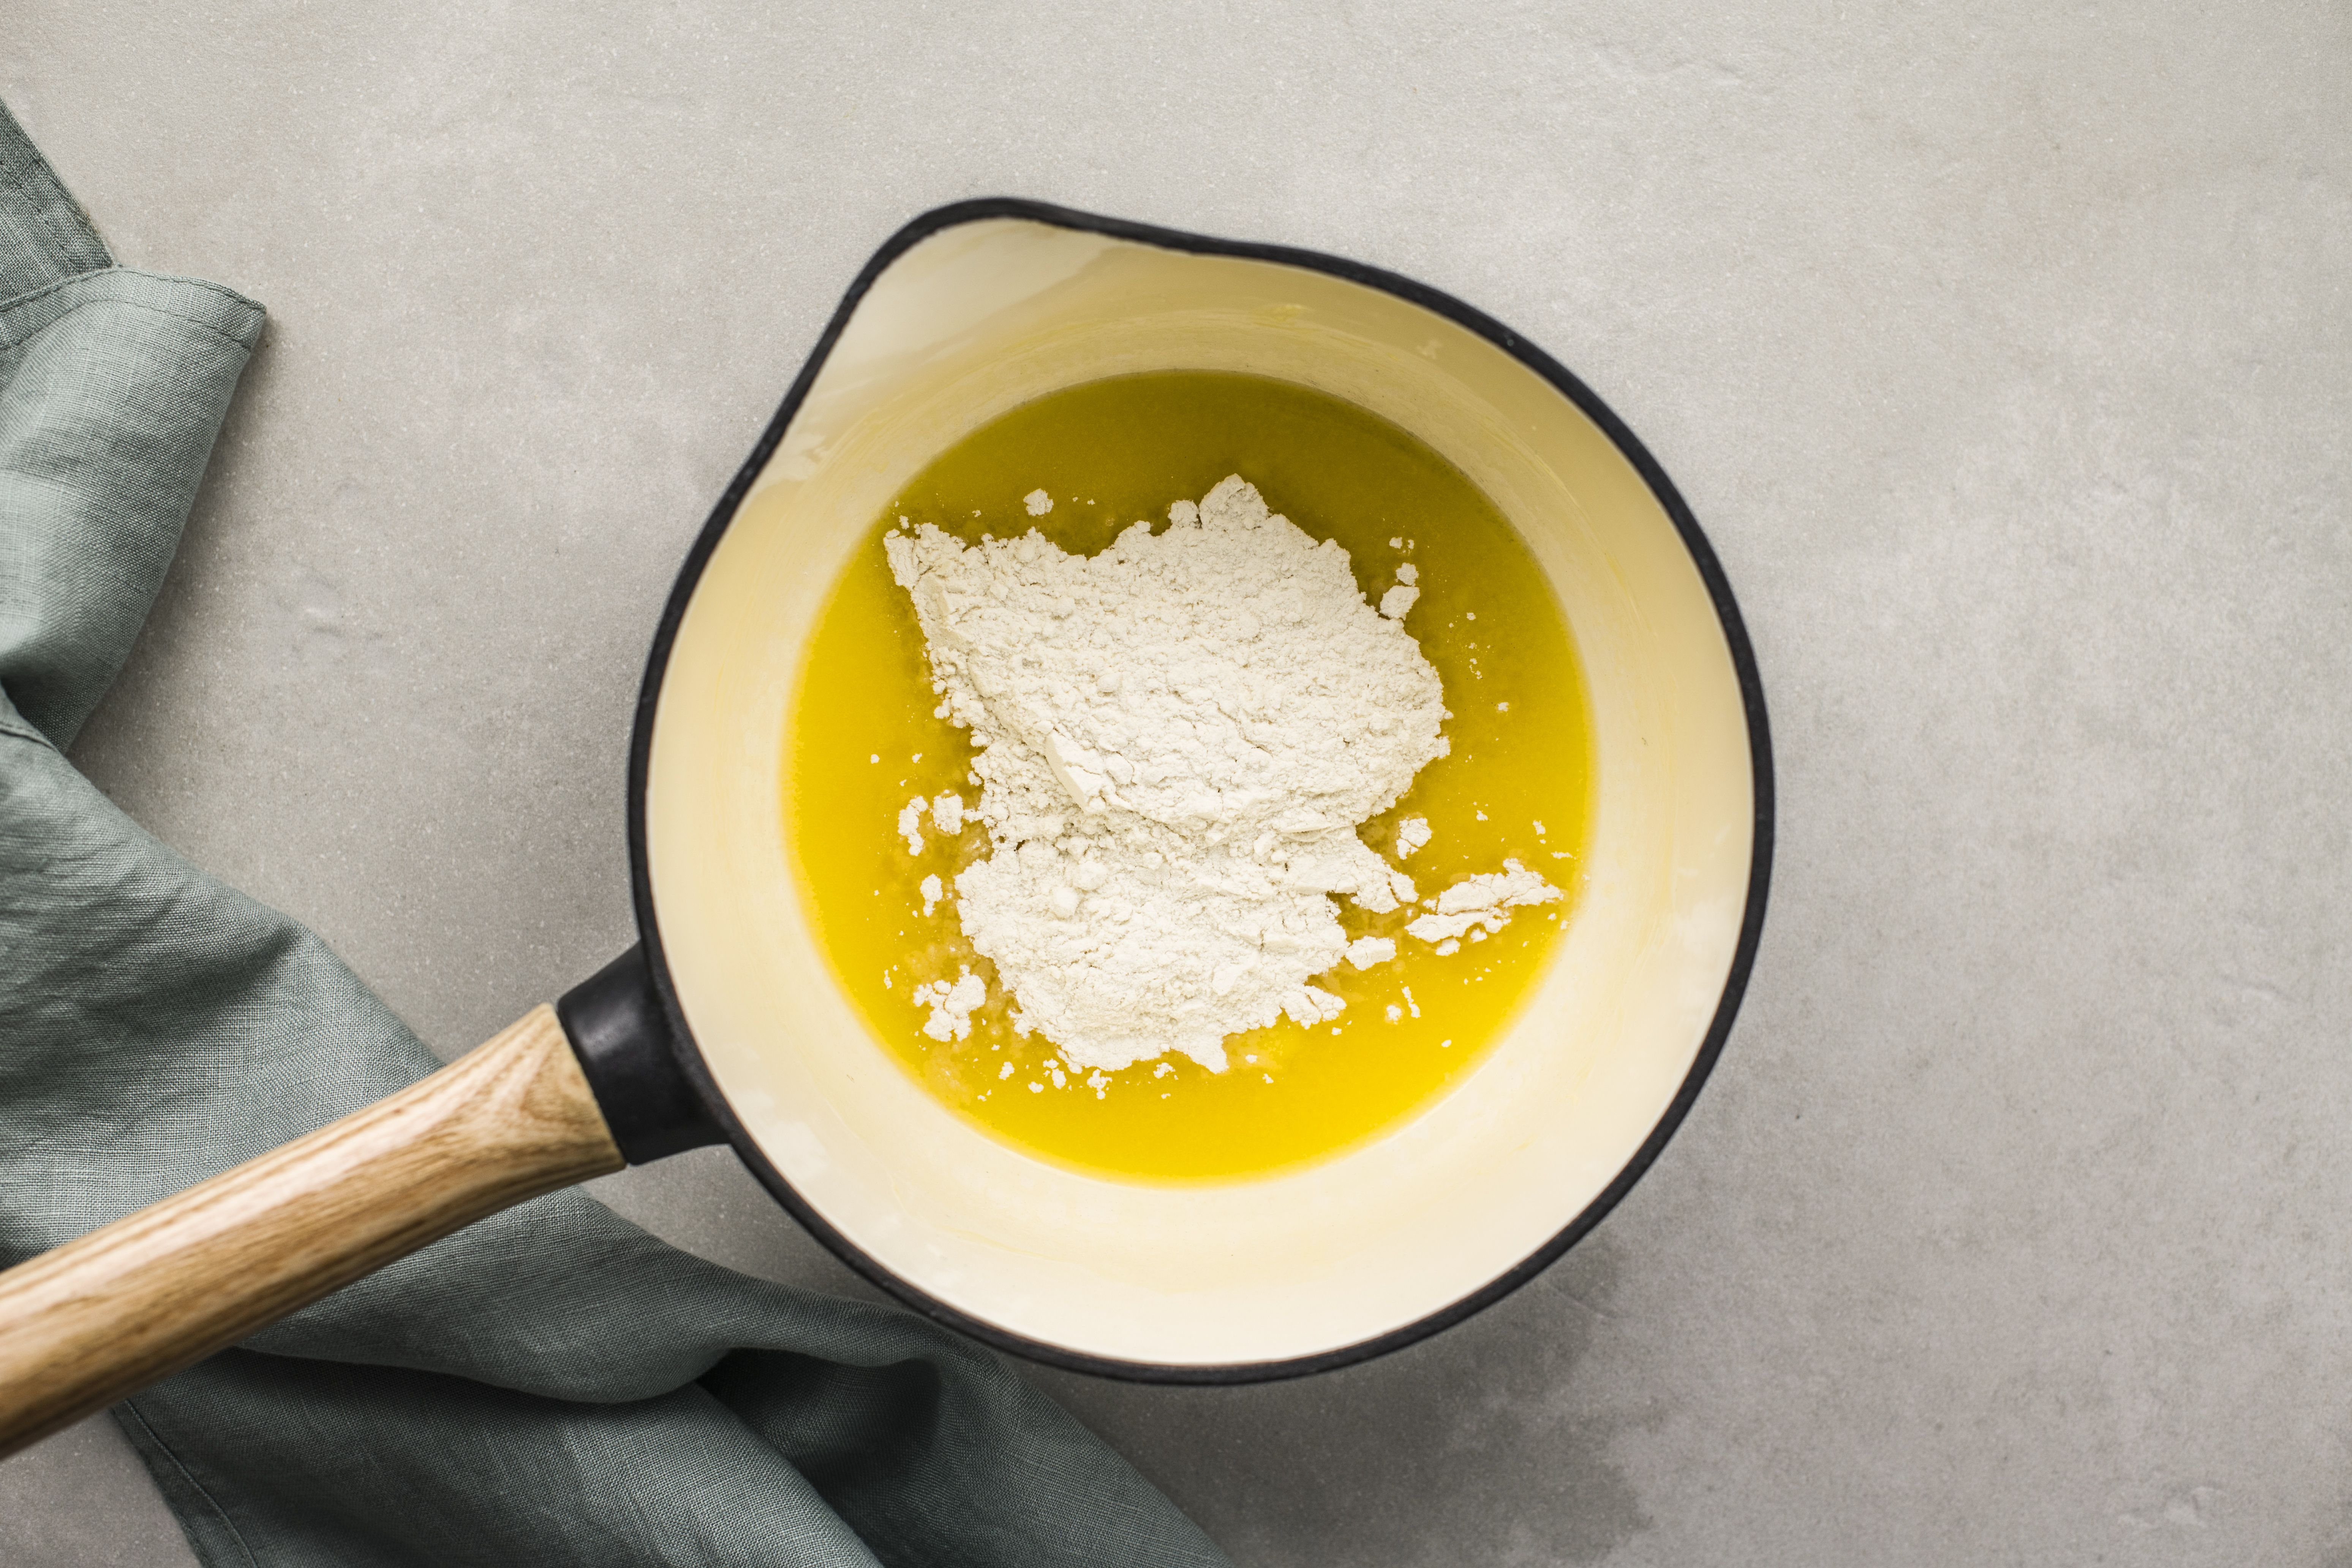 Butter melting with flour in a saucepan to make a roux